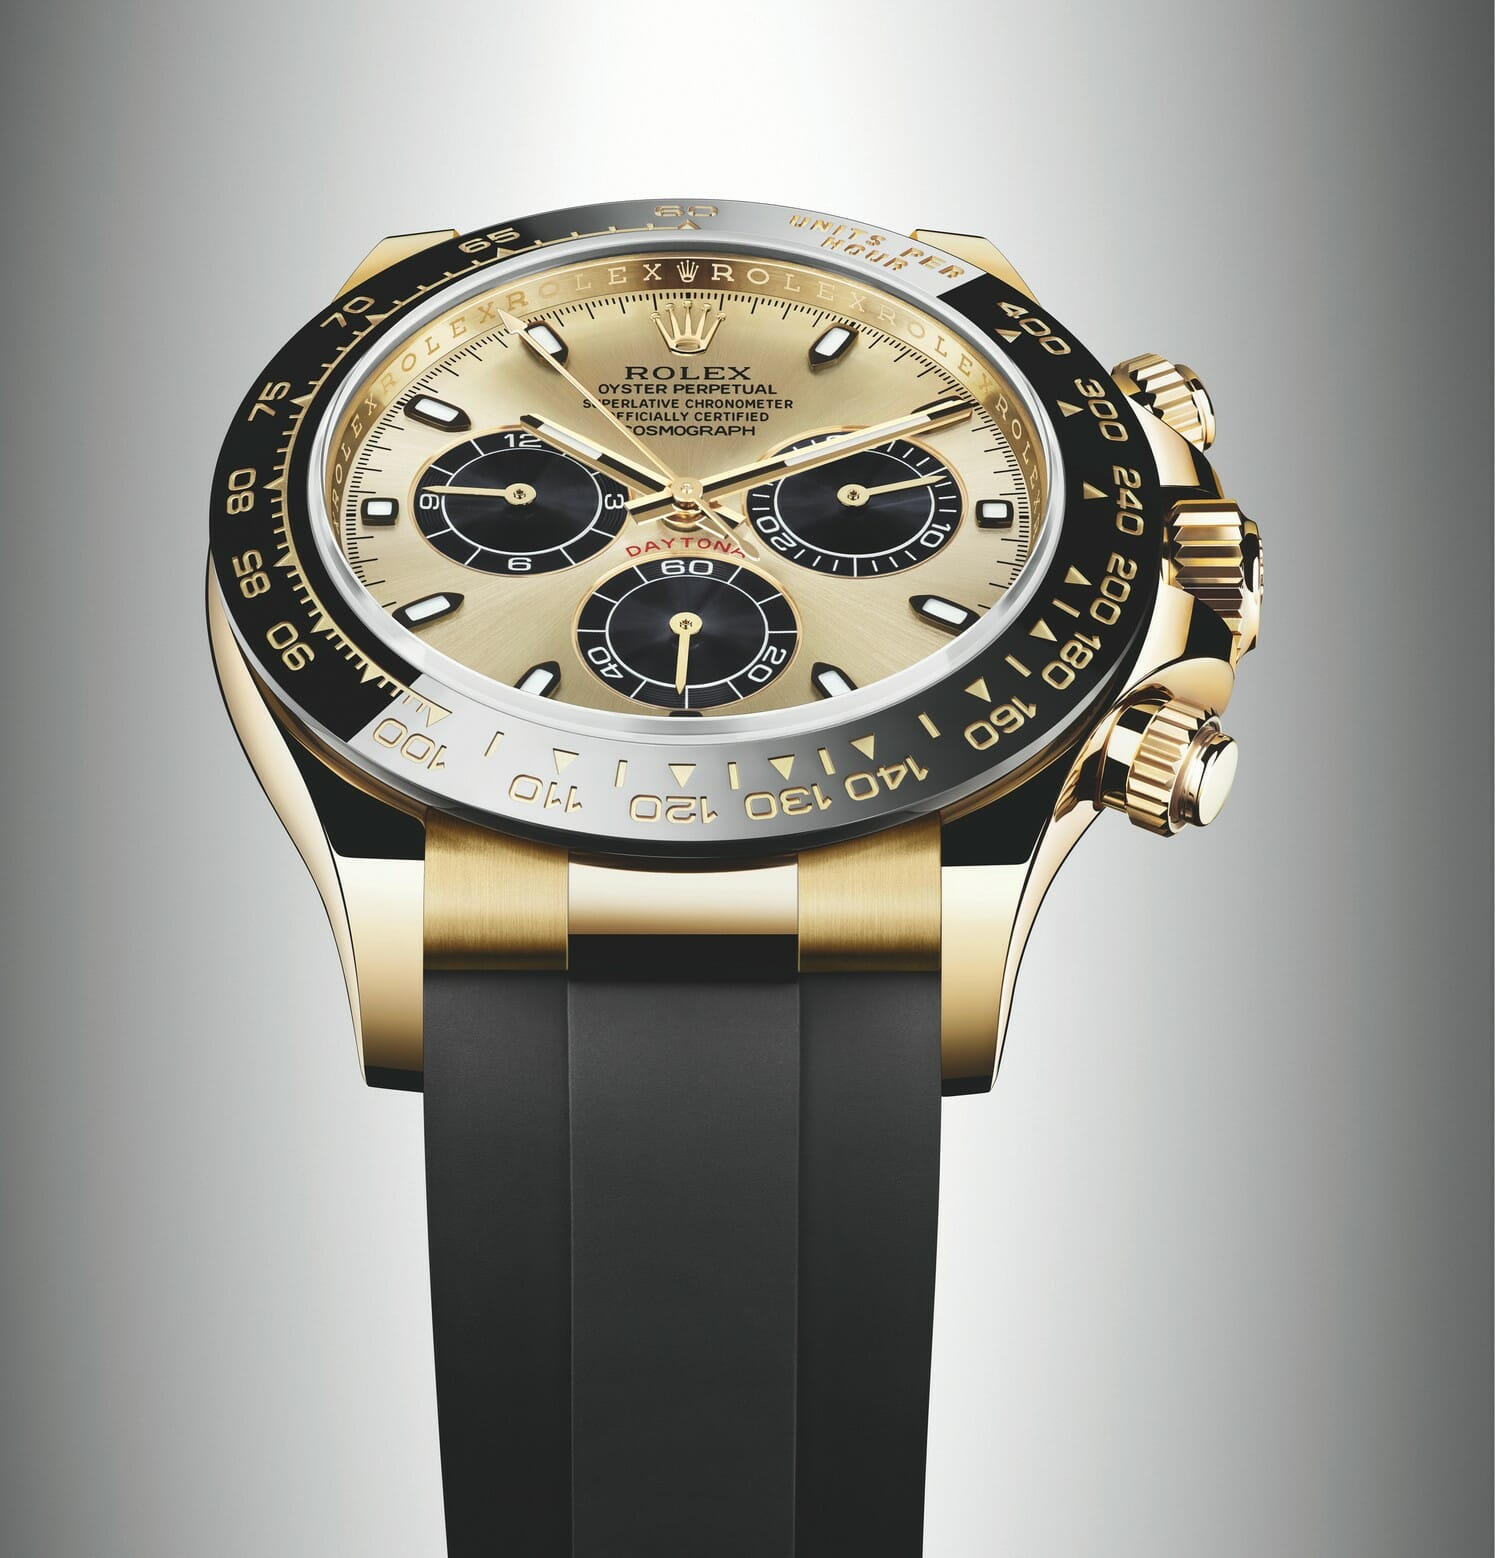 Rolex Rubber Rolex Introduces A Daytona On Oysterflex Rubber Strap Rubber B